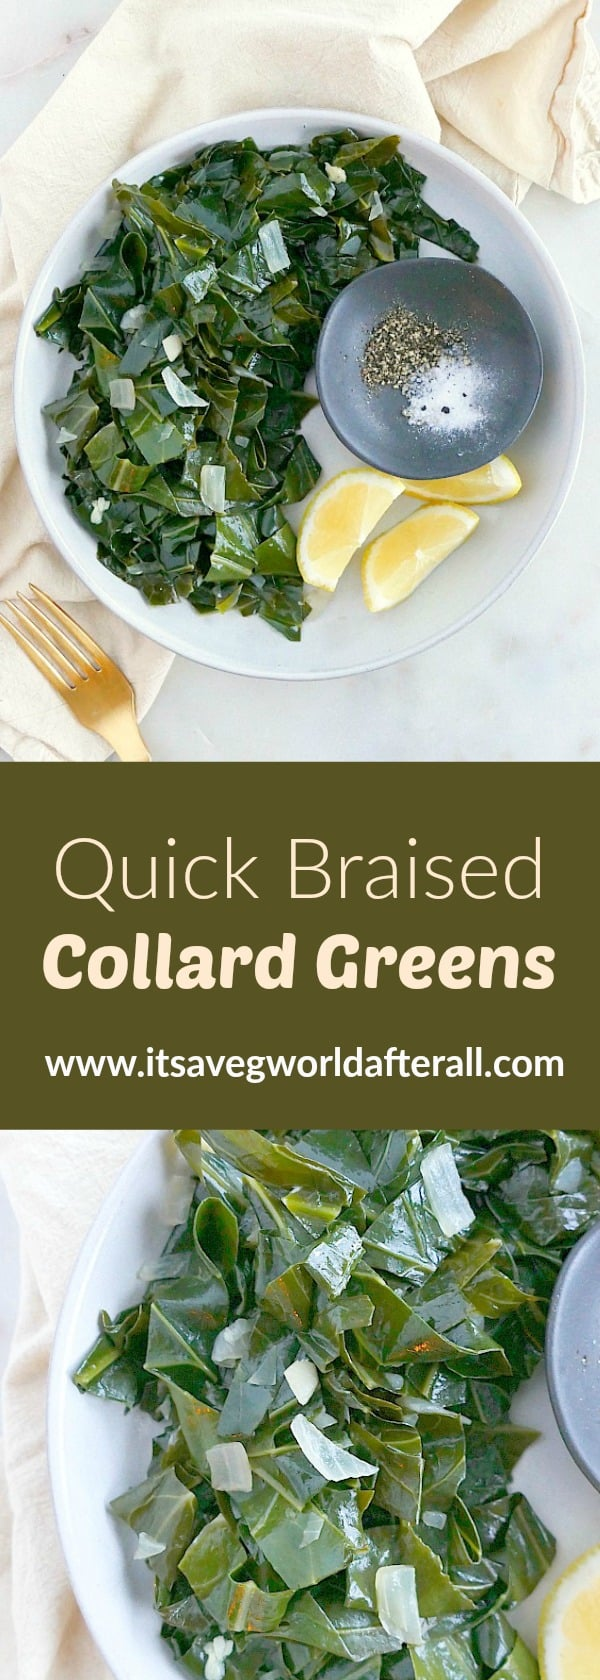 Quick Braised Collard Greens Pin